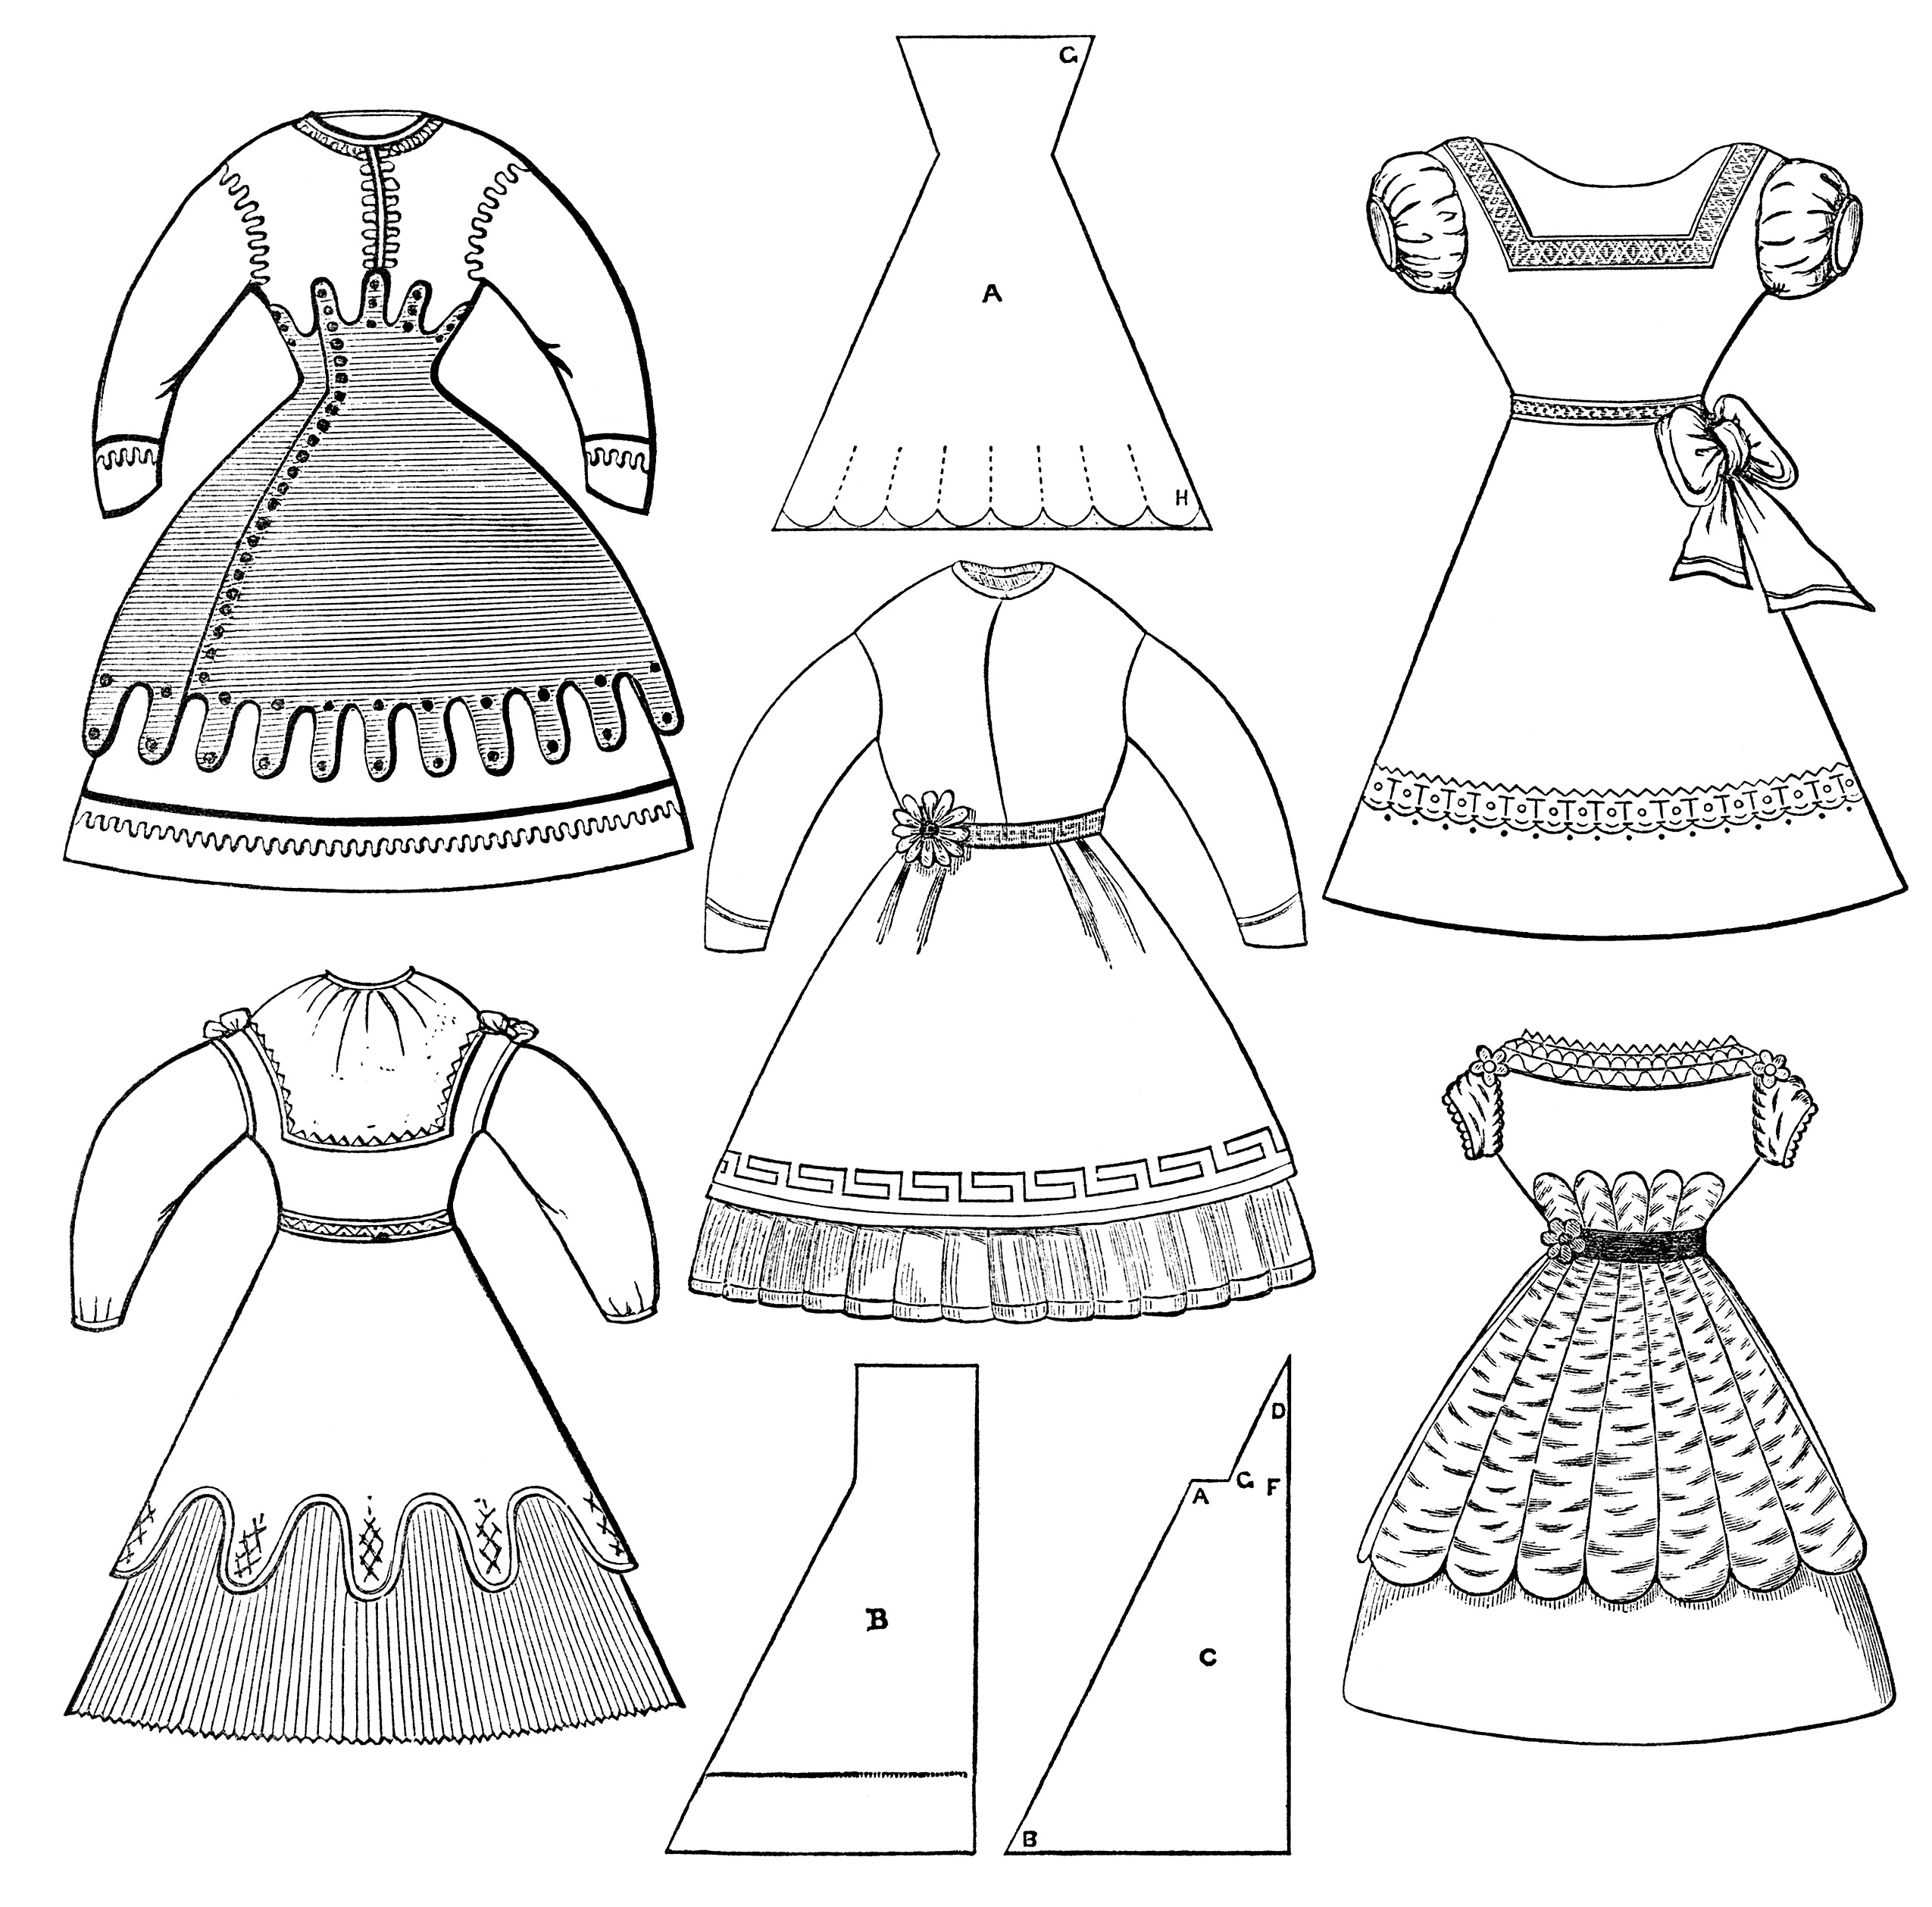 Put away clothes clipart black and white picture library download Victorian Girls Dresses ~ Free Clip Art - Old Design Shop Blog picture library download